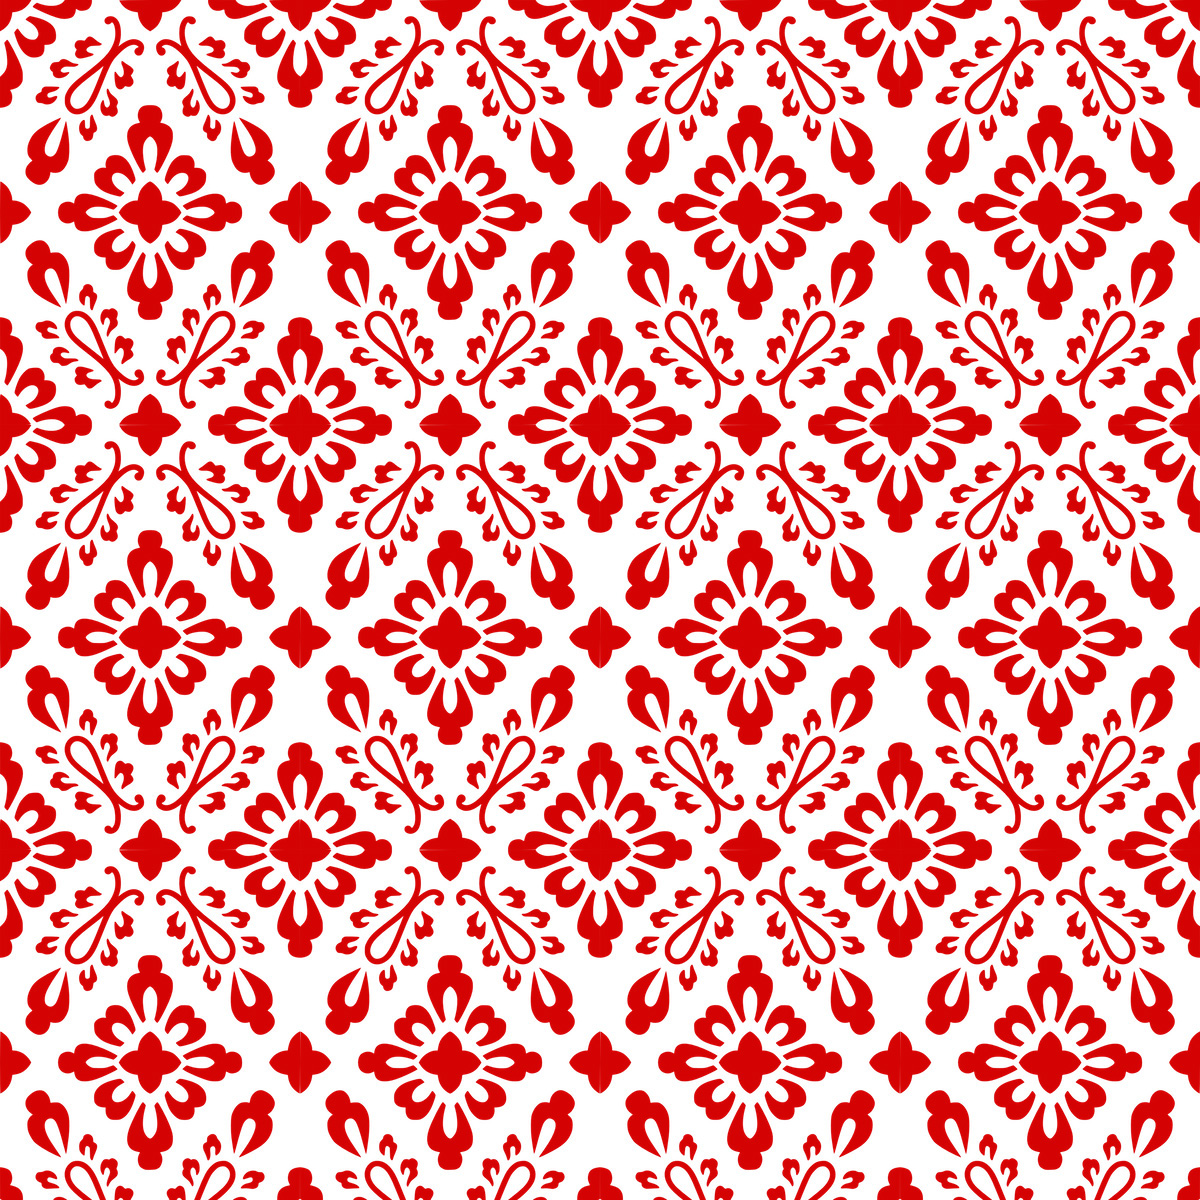 Images About Scrapbook Paper Backgrounds Screensavers